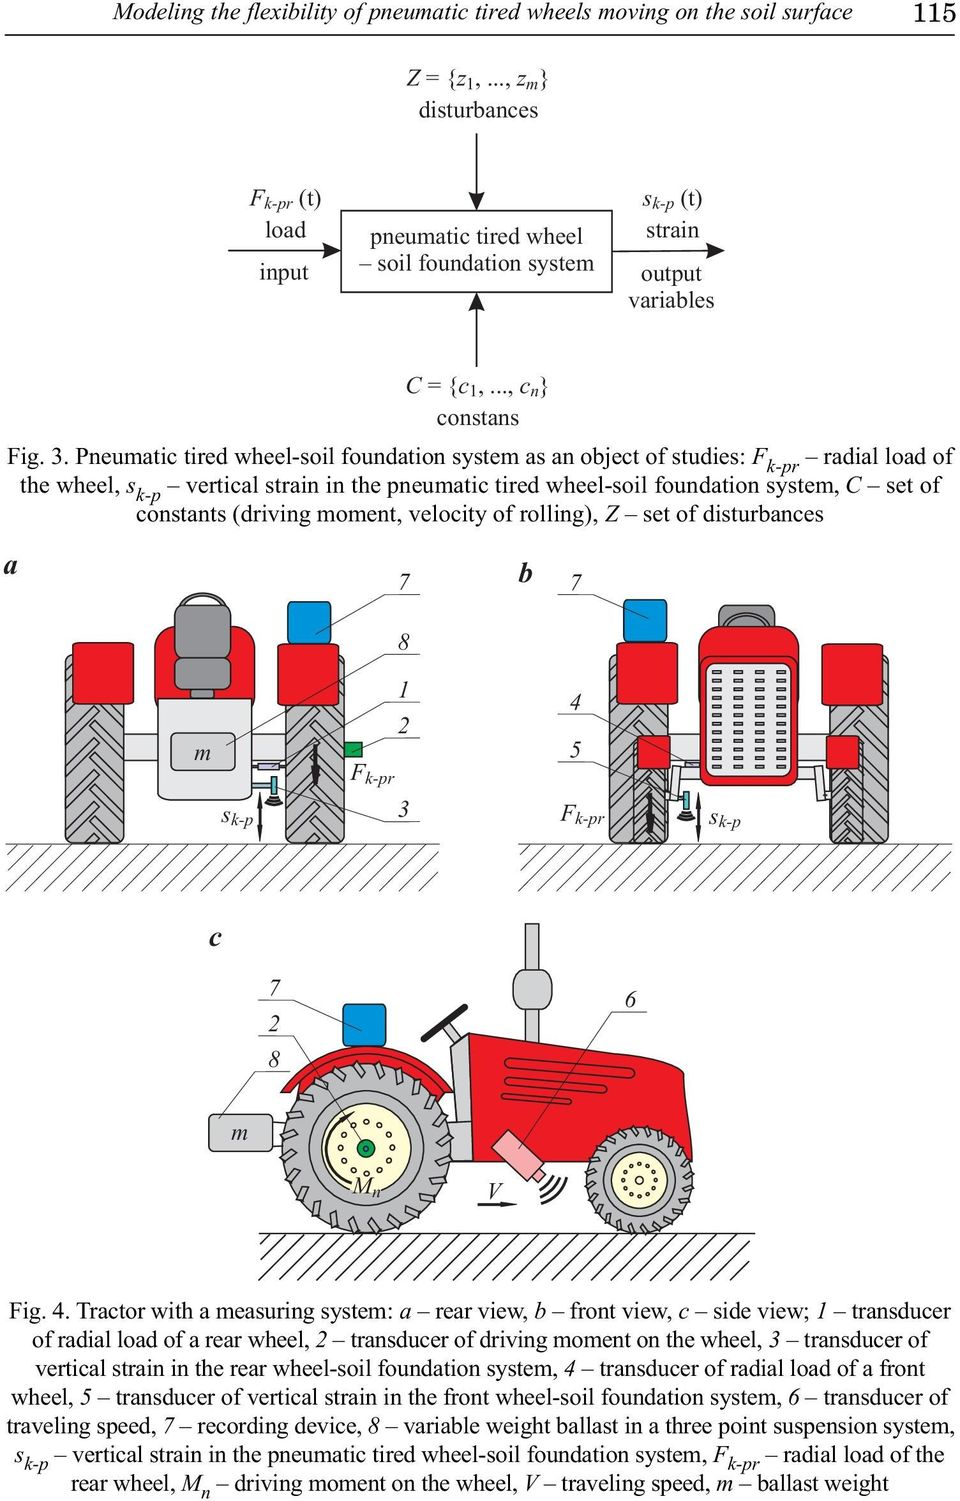 Pneumatic tired wheel-soil foundation system as an object of studies: radial load of the wheel, vertical strain in the pneumatic tired wheel-soil foundation system, C set of constants (driving